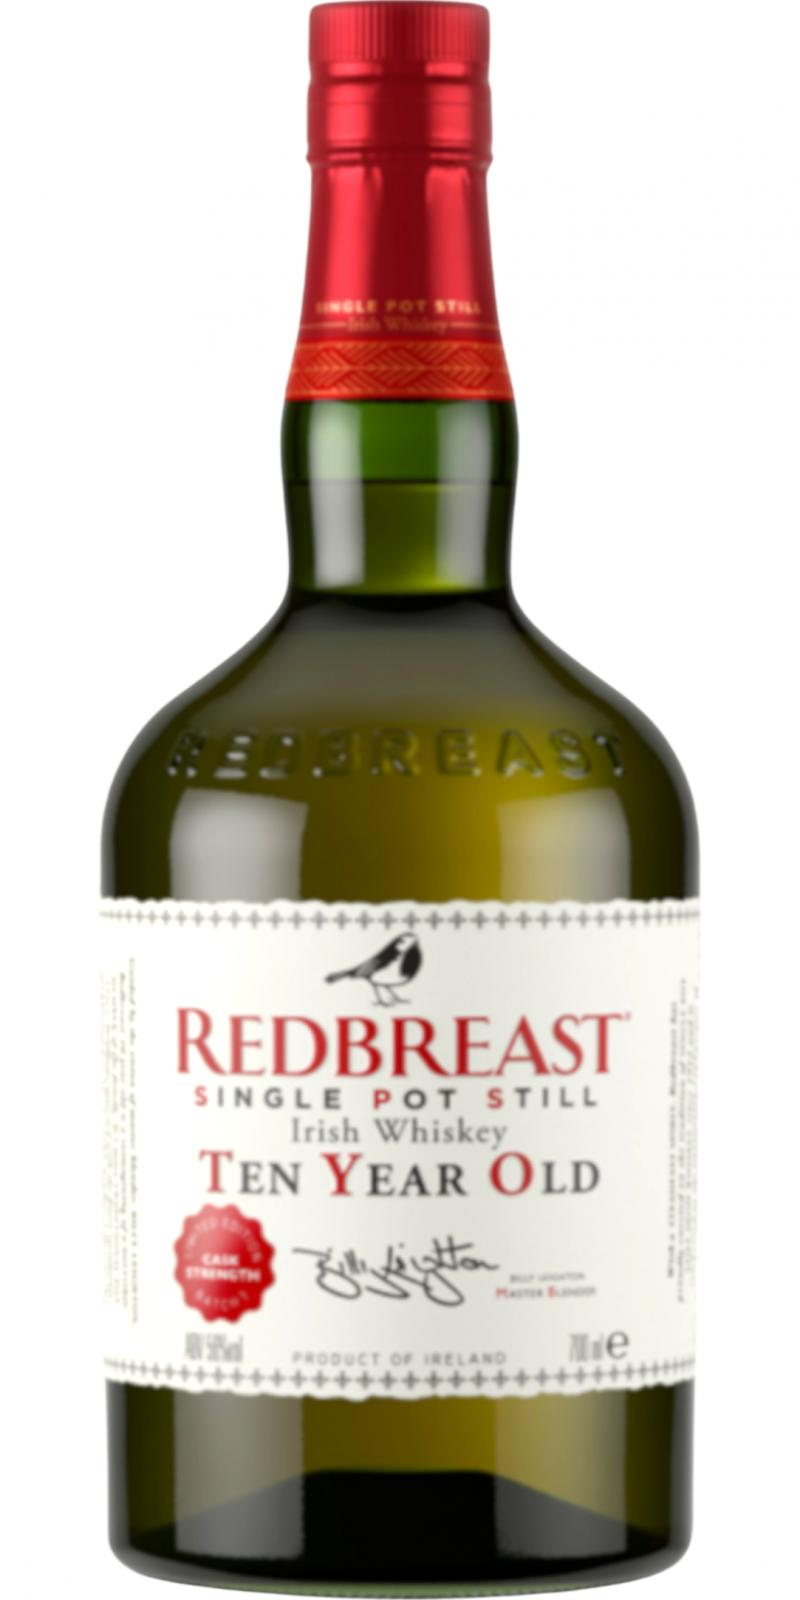 Redbreast 10-year-old